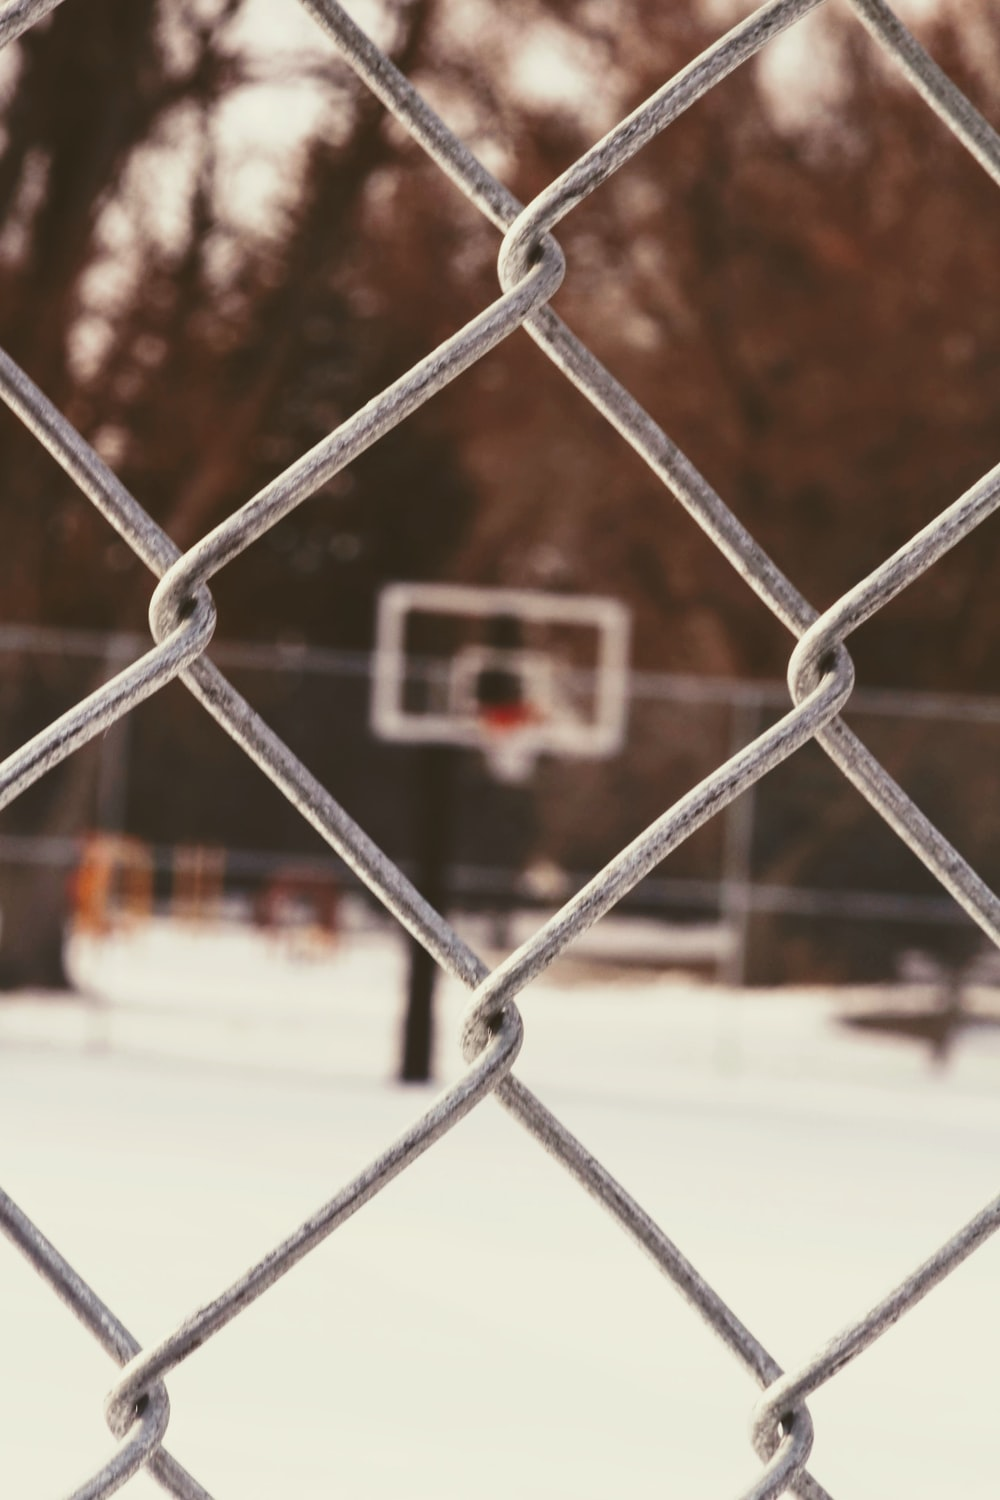 white and black basketball hoop during daytime